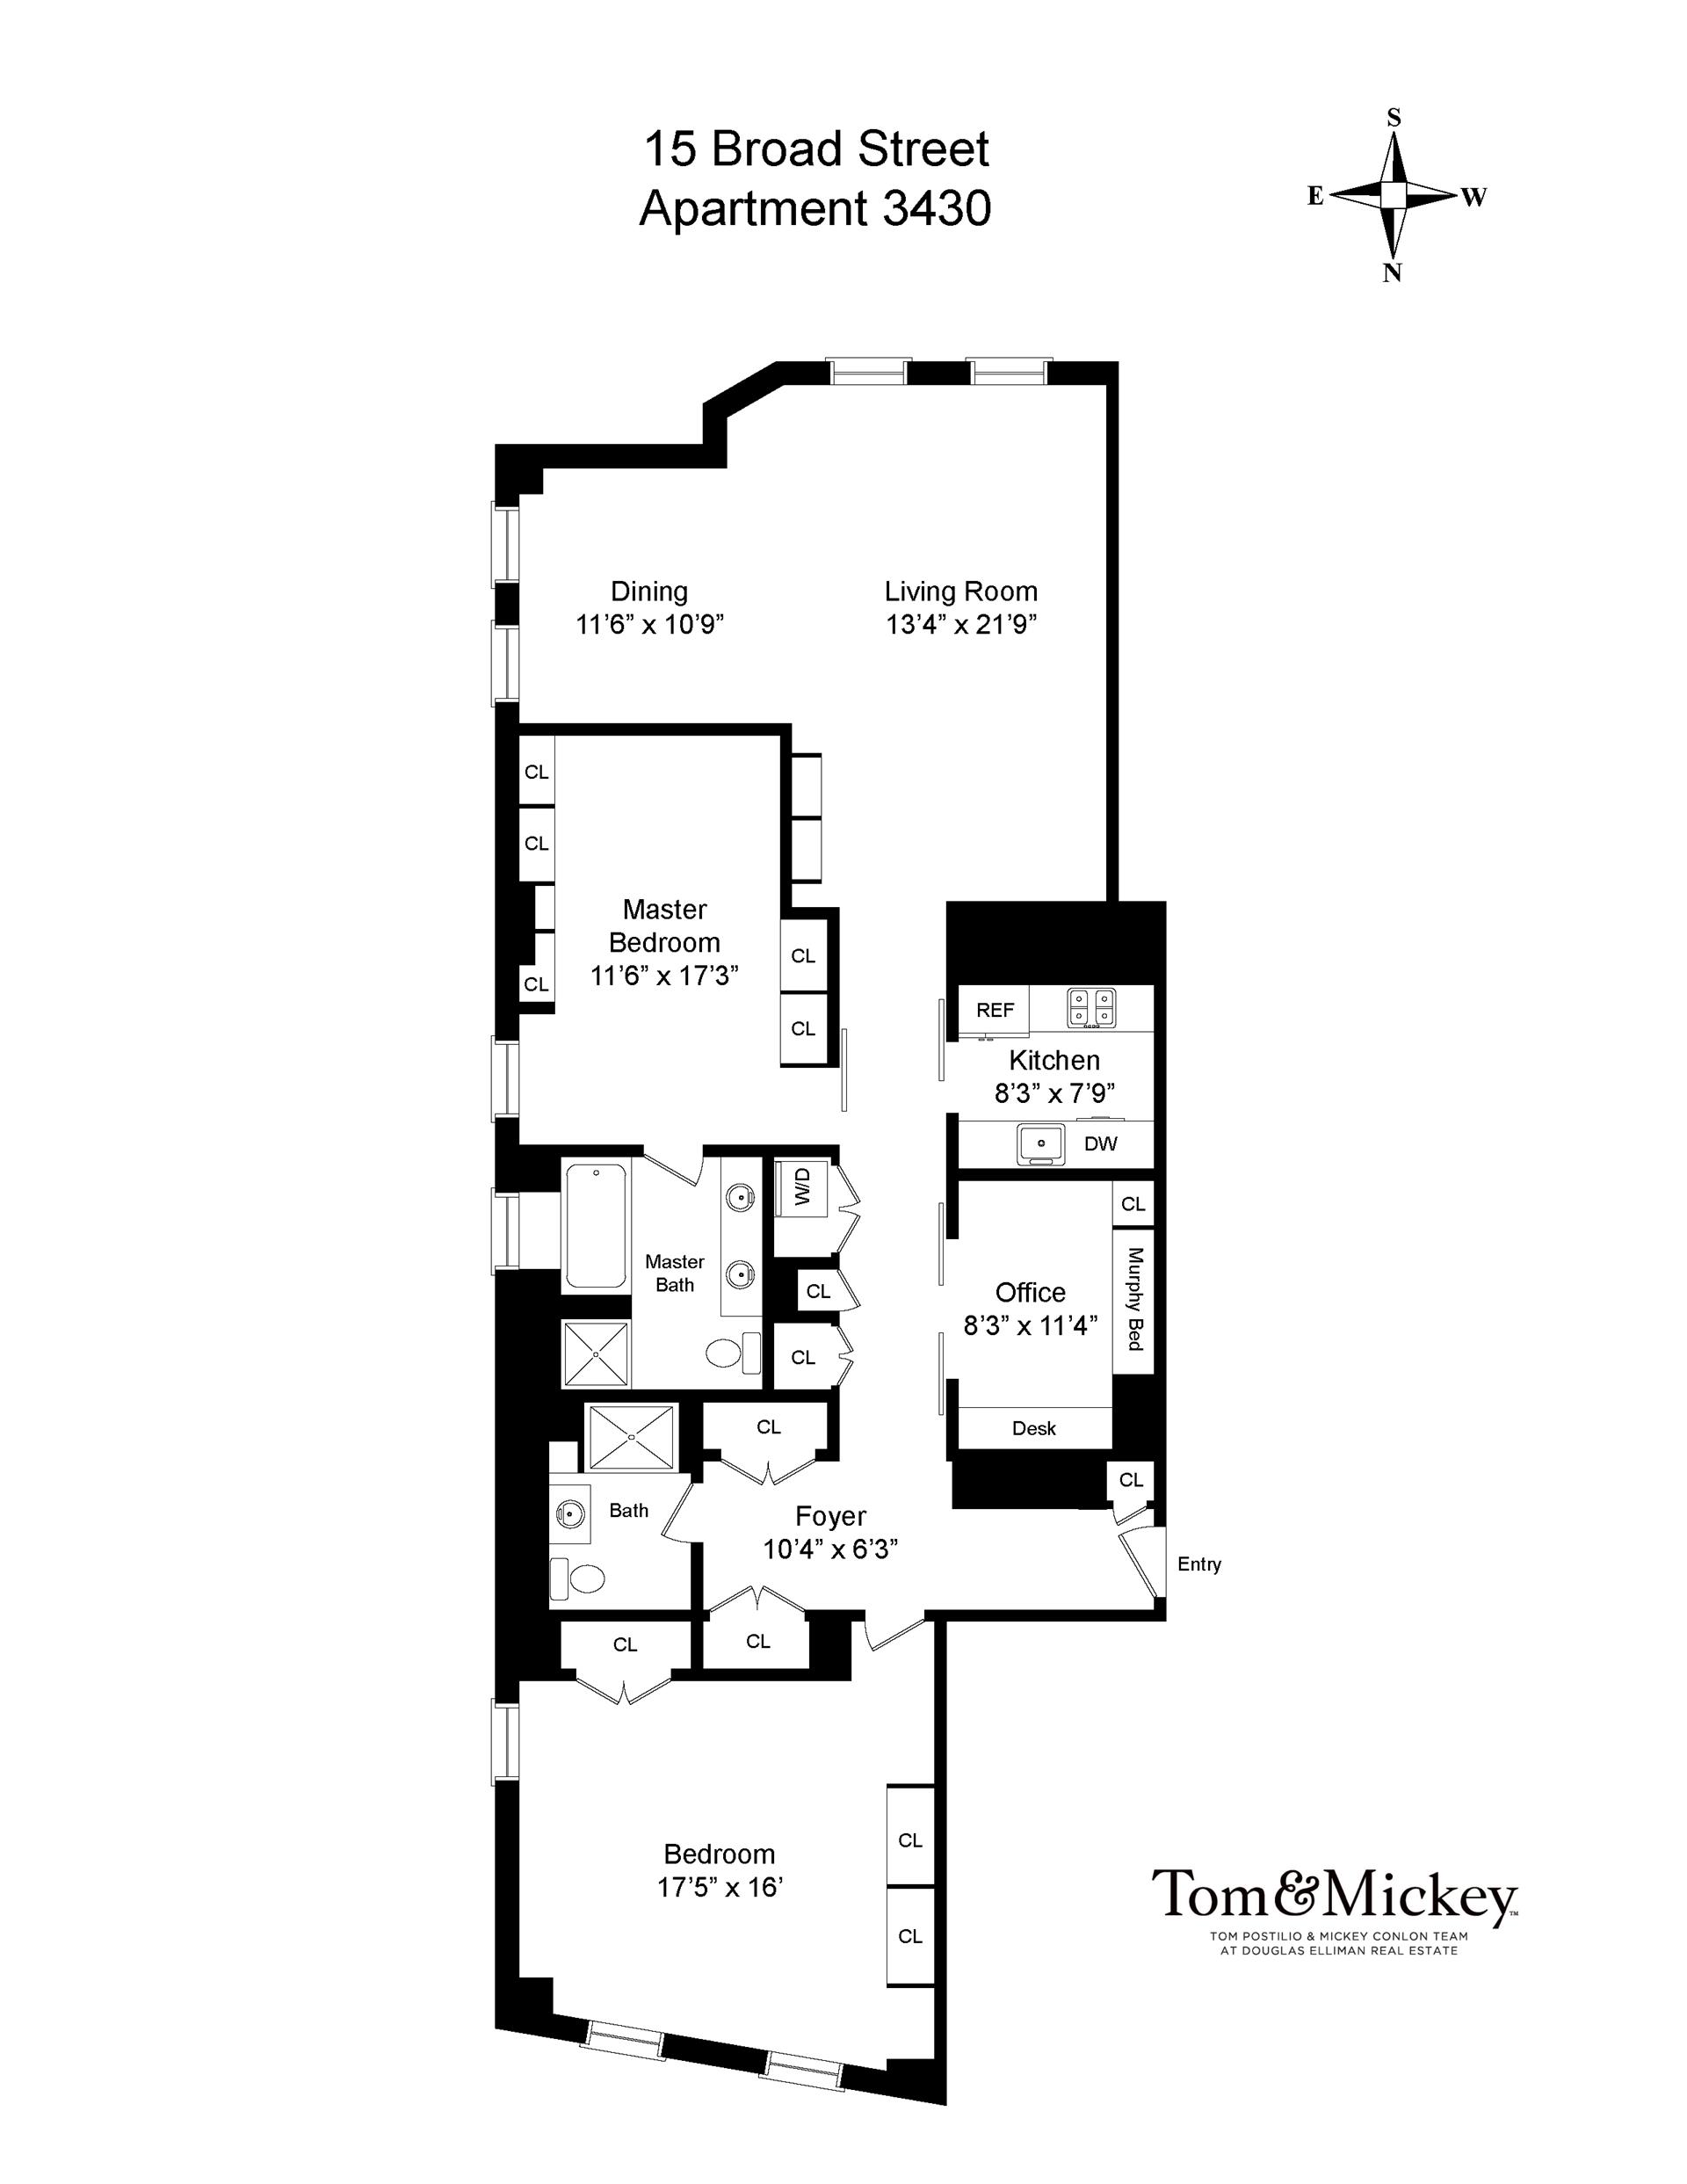 Floor plan of DOWNTOWN BY STARCK, 15 Broad St, 3430 - Financial District, New York